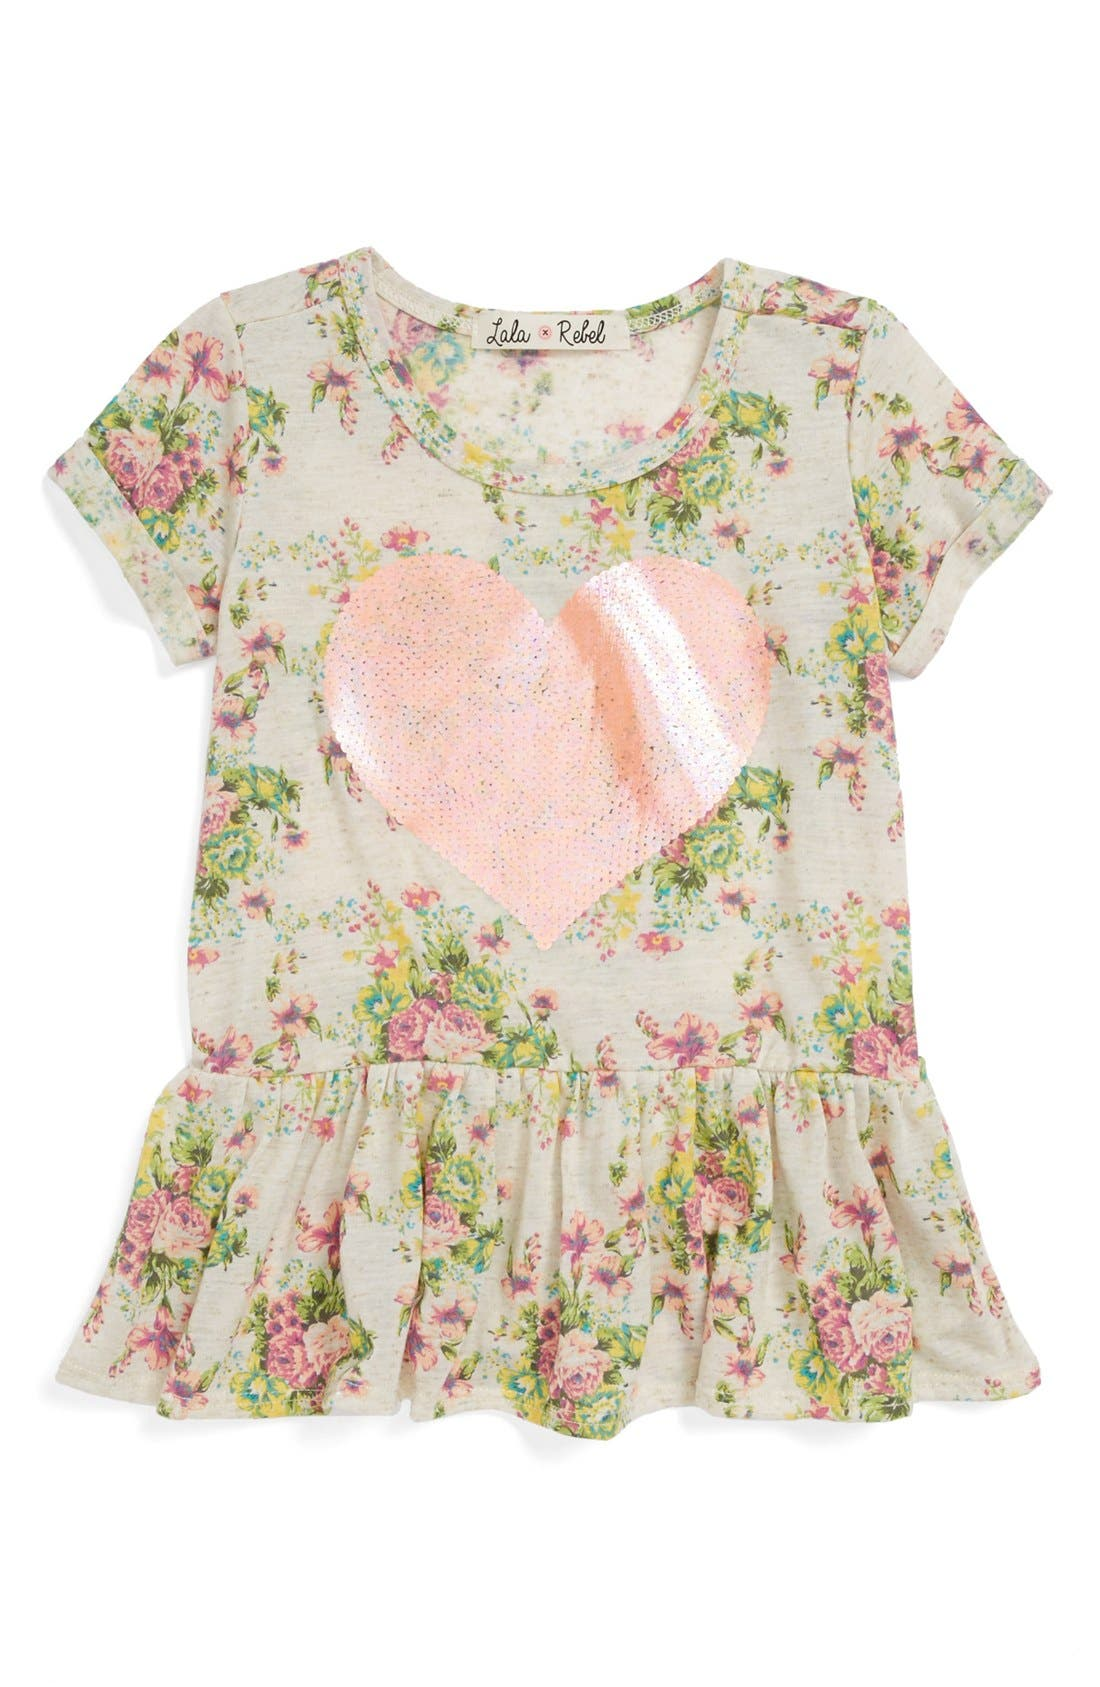 Alternate Image 1 Selected - Lala Rebel Sequin Print Peplum Top (Toddler Girls)